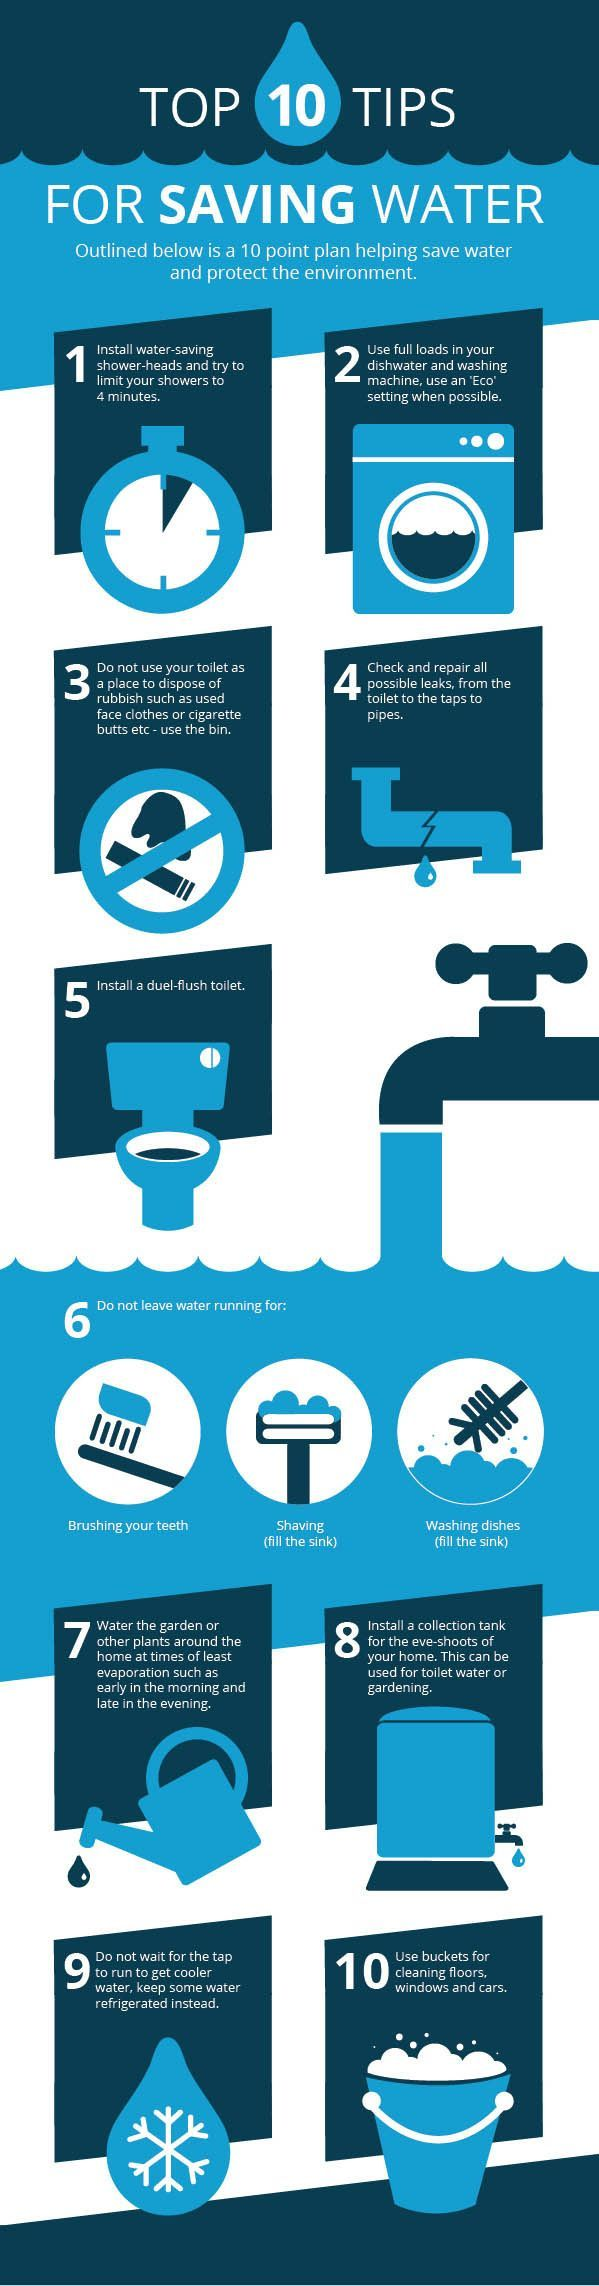 Best 25 water saving tips ideas on pinterest save water for Best ways to save money when building a house